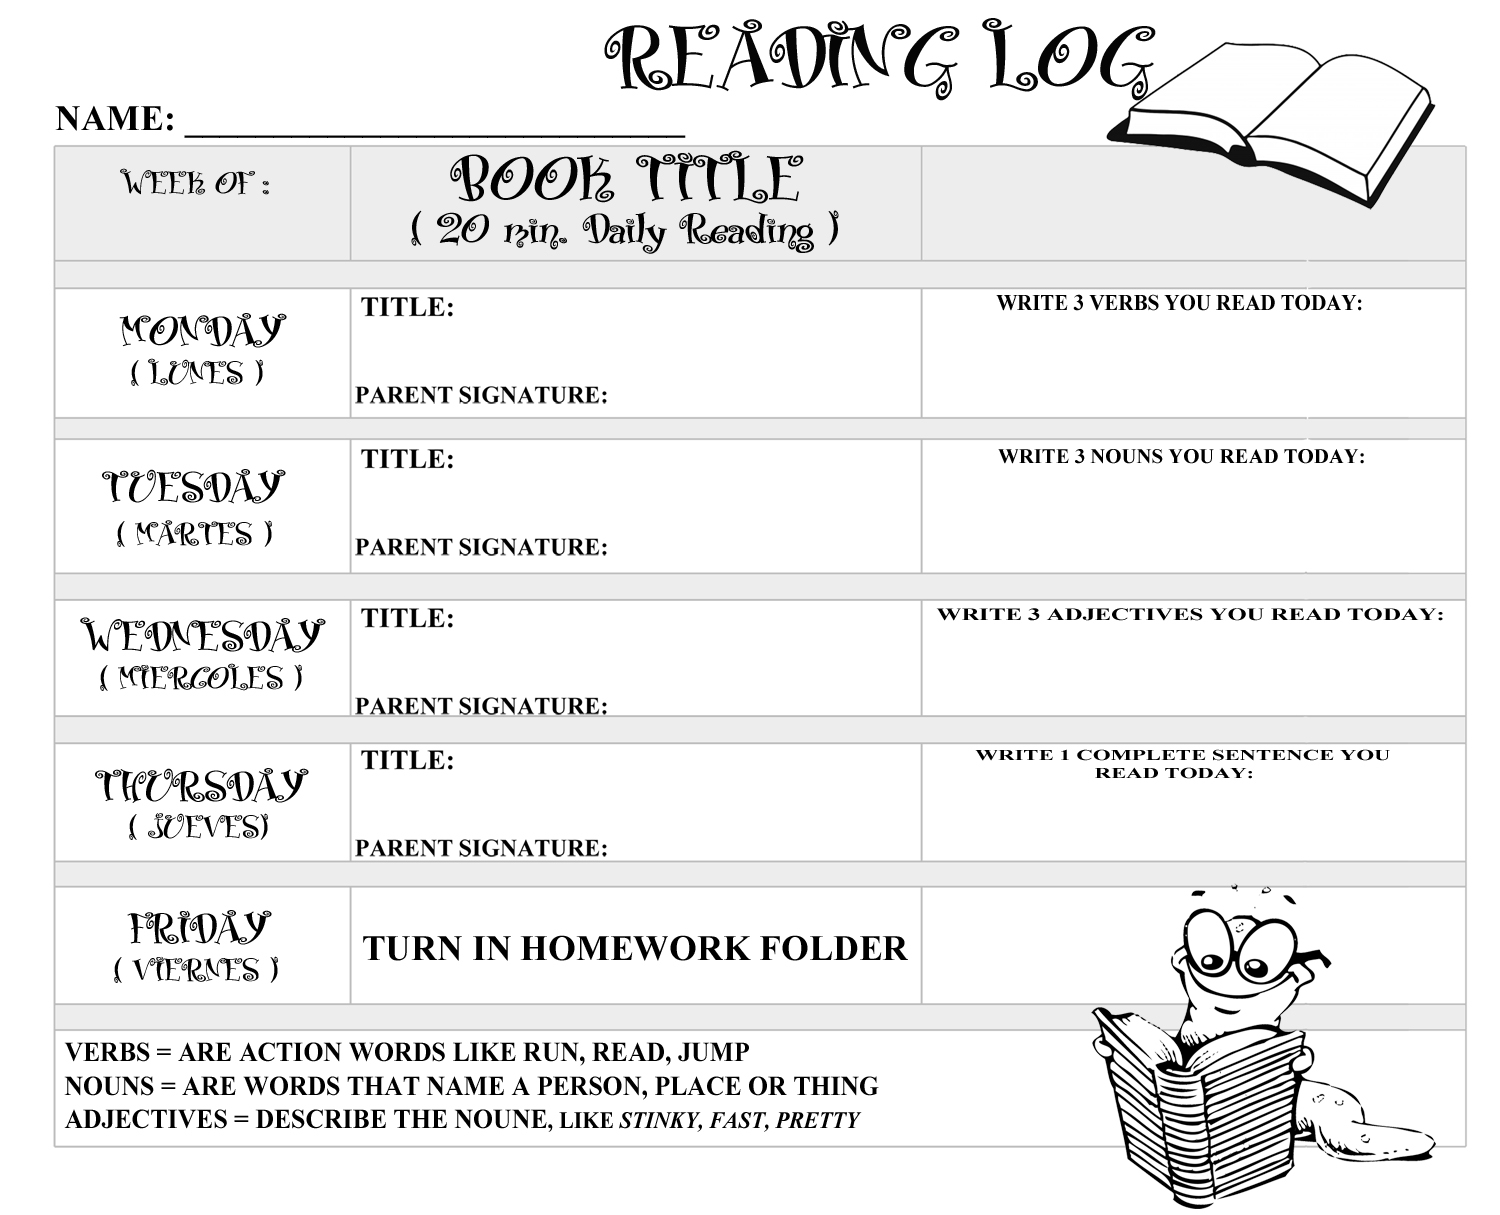 Printable Reading Logs With Parent Signature